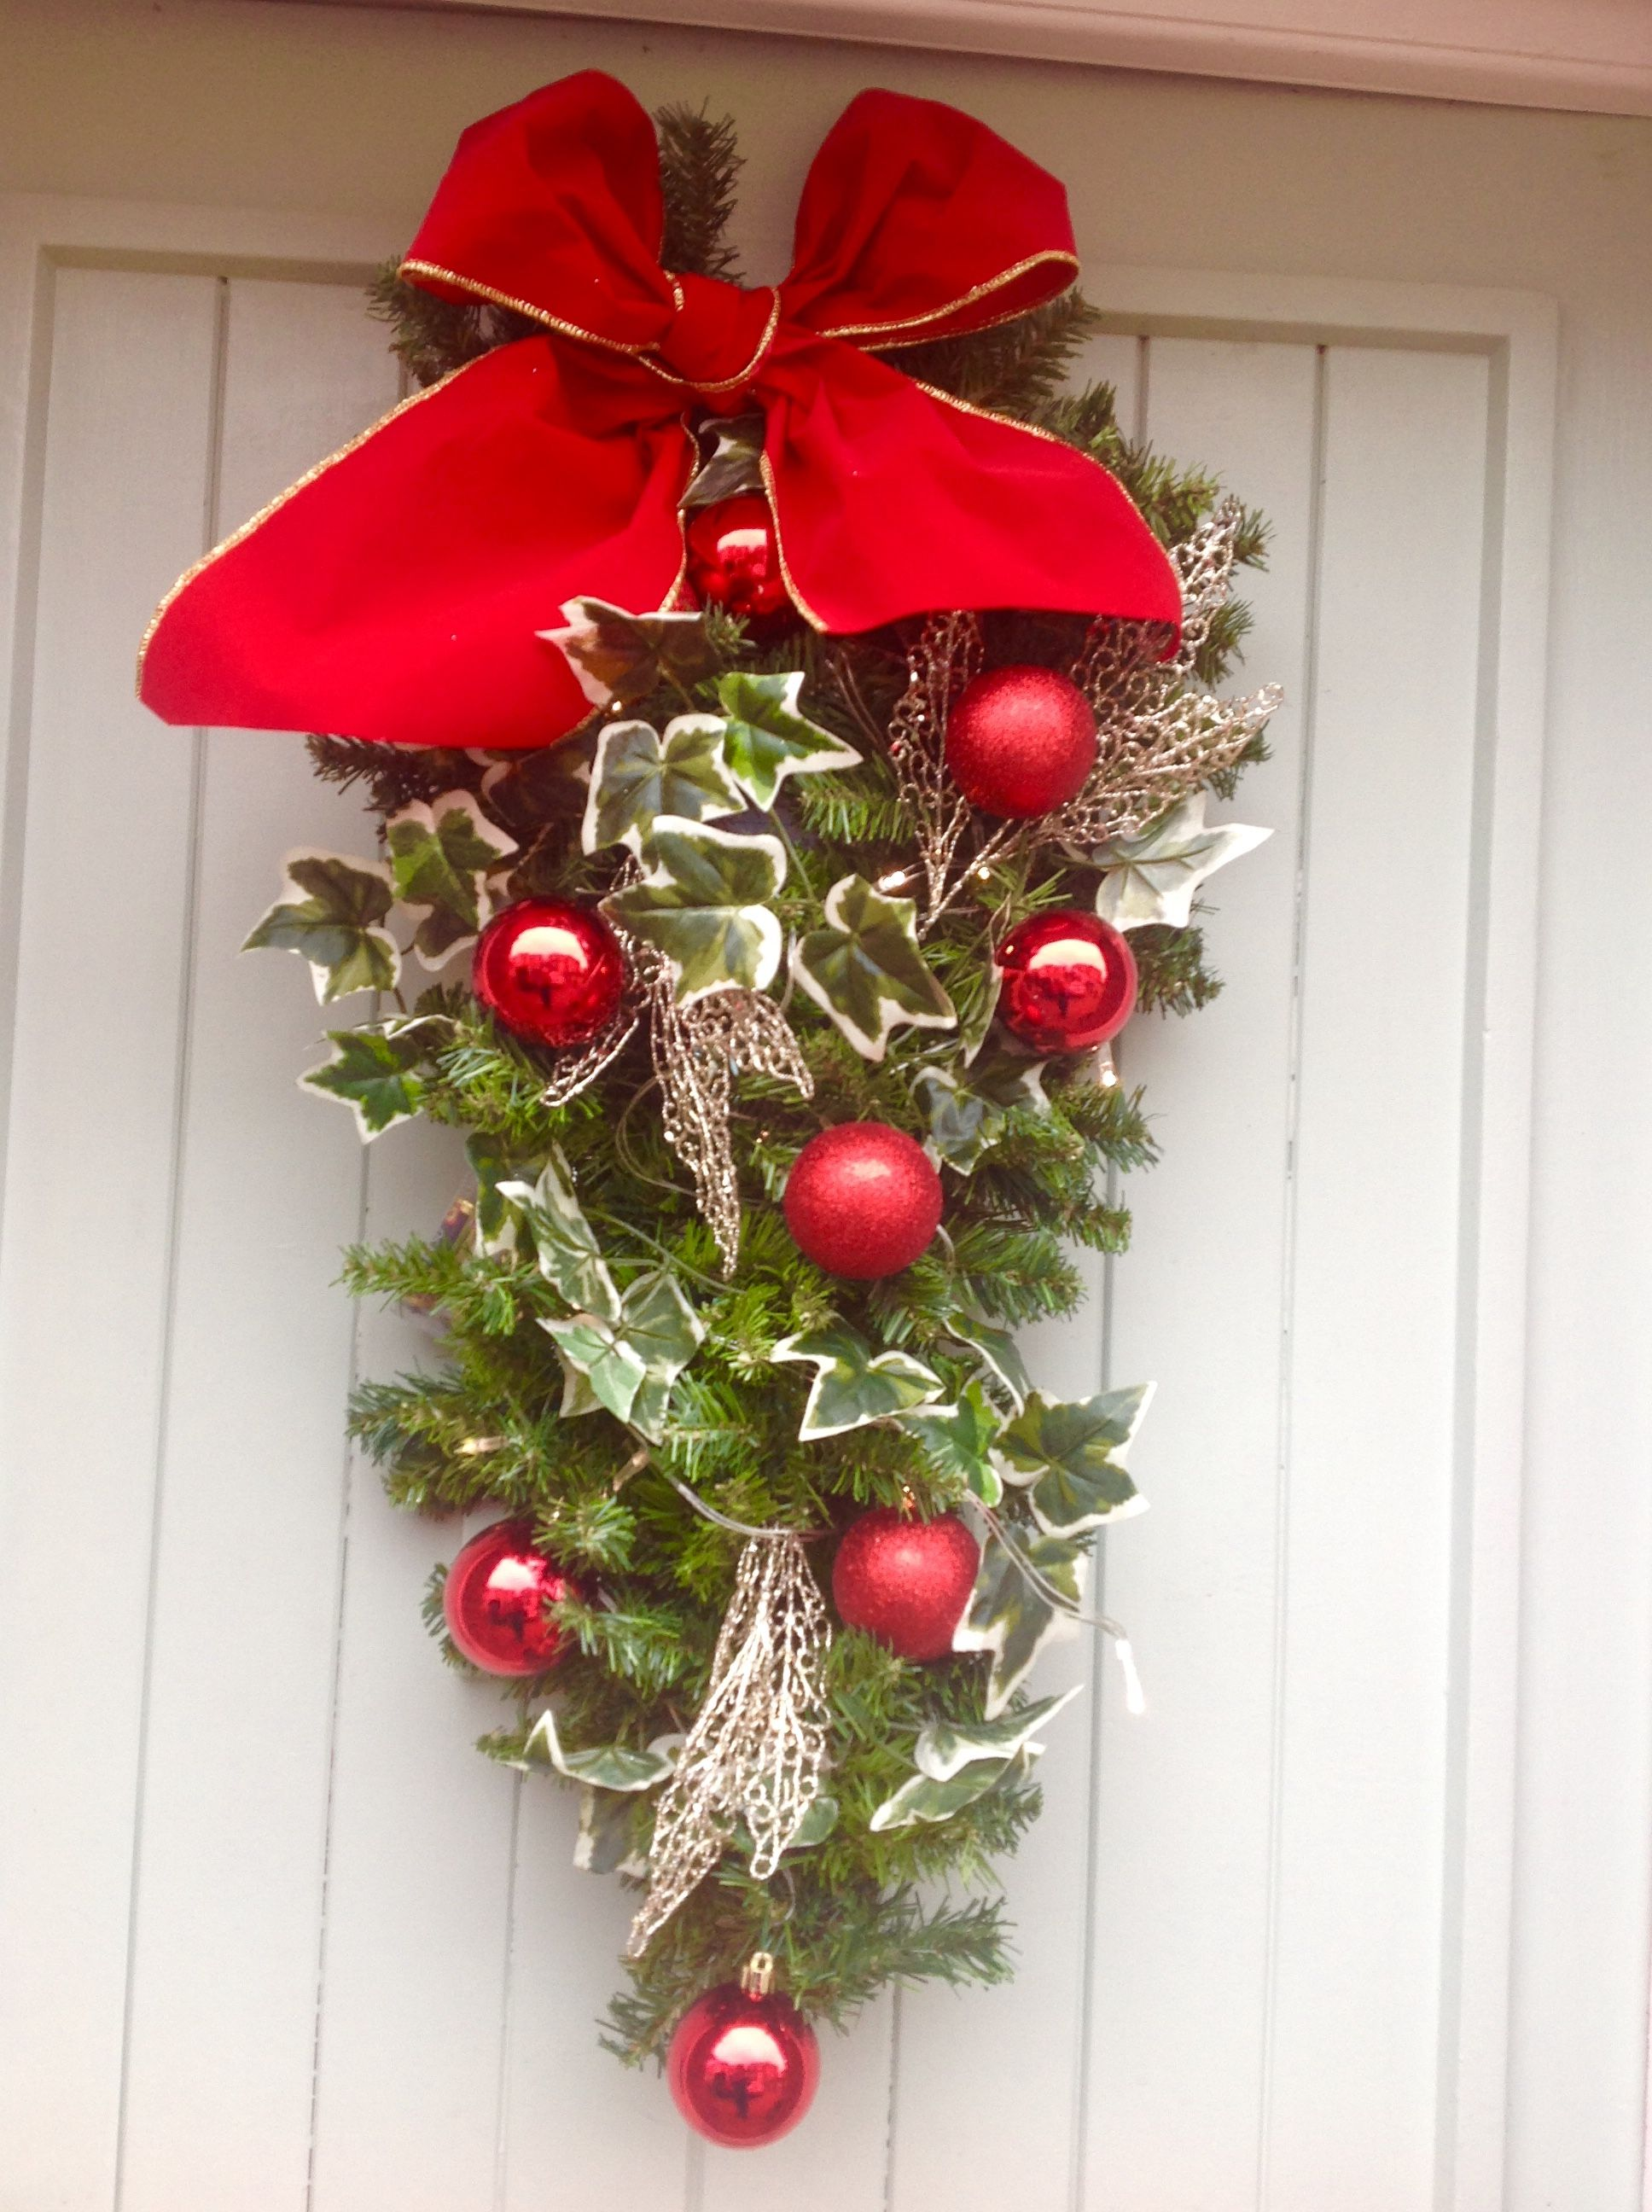 A different door dressing by anyabankschristmasdecorator